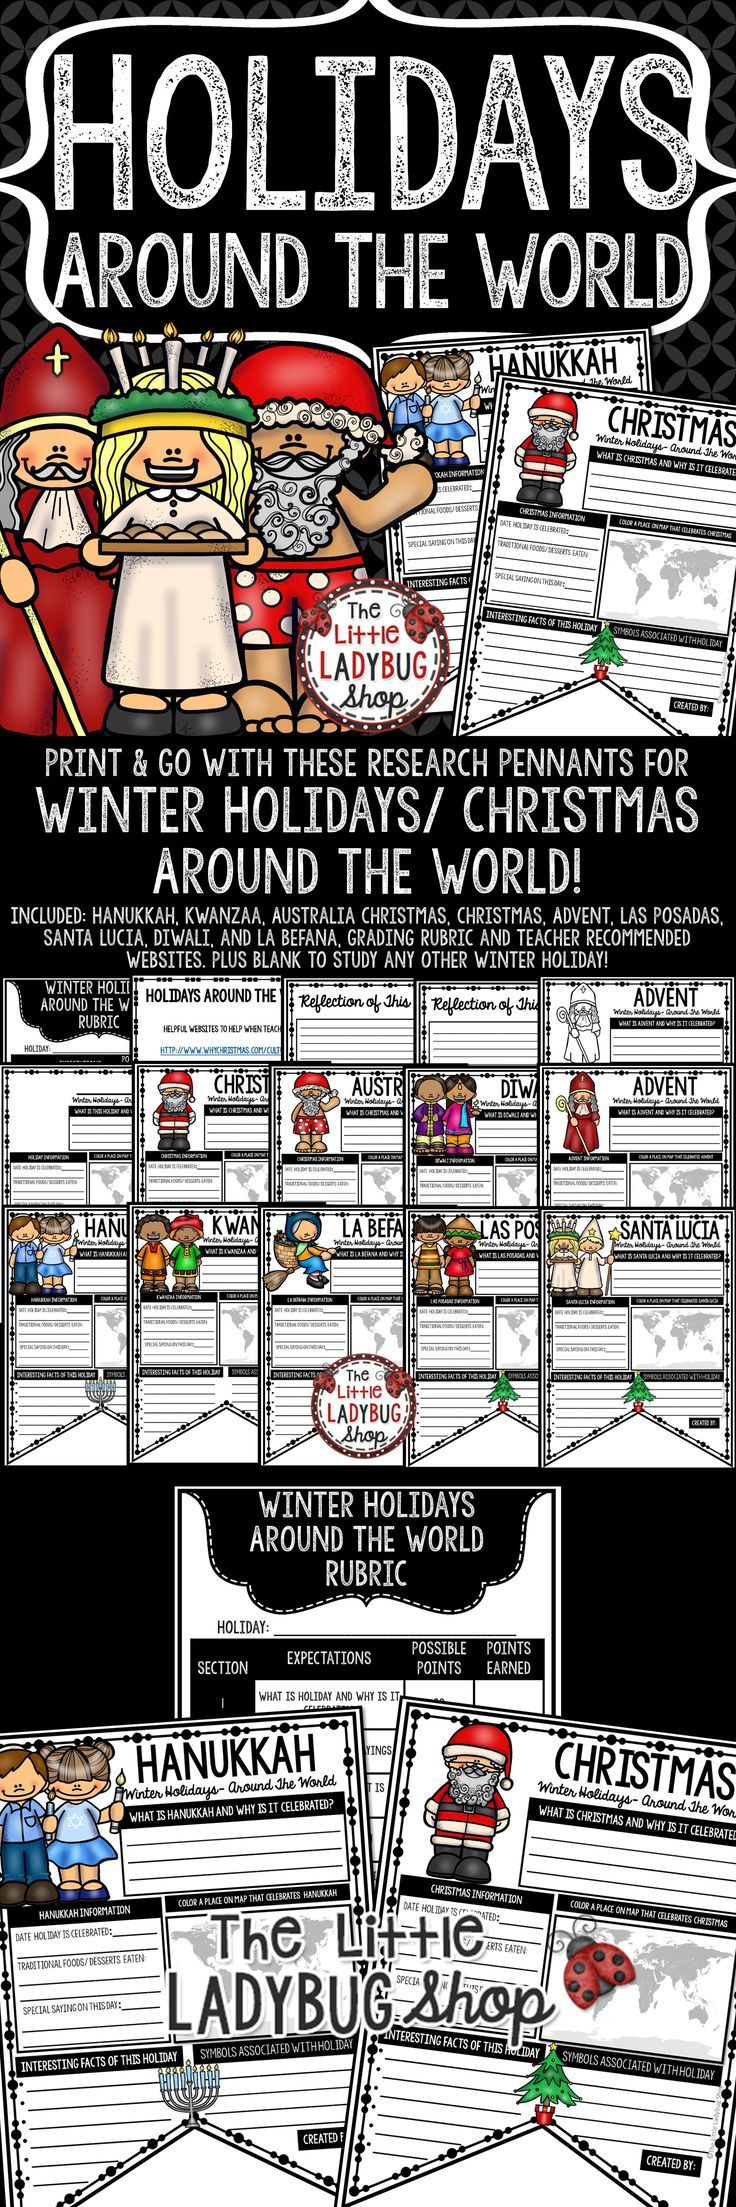 You will LOVE these Winter Holidays Around The World Pennants. You just need to Print & Go with these Christmas Around the World Activities to celebrate this special holiday learning about cultures around the world! There are perfect to use the month of December as mini research projects! YOU will LOVE displaying these Christmas Around The World Posters!